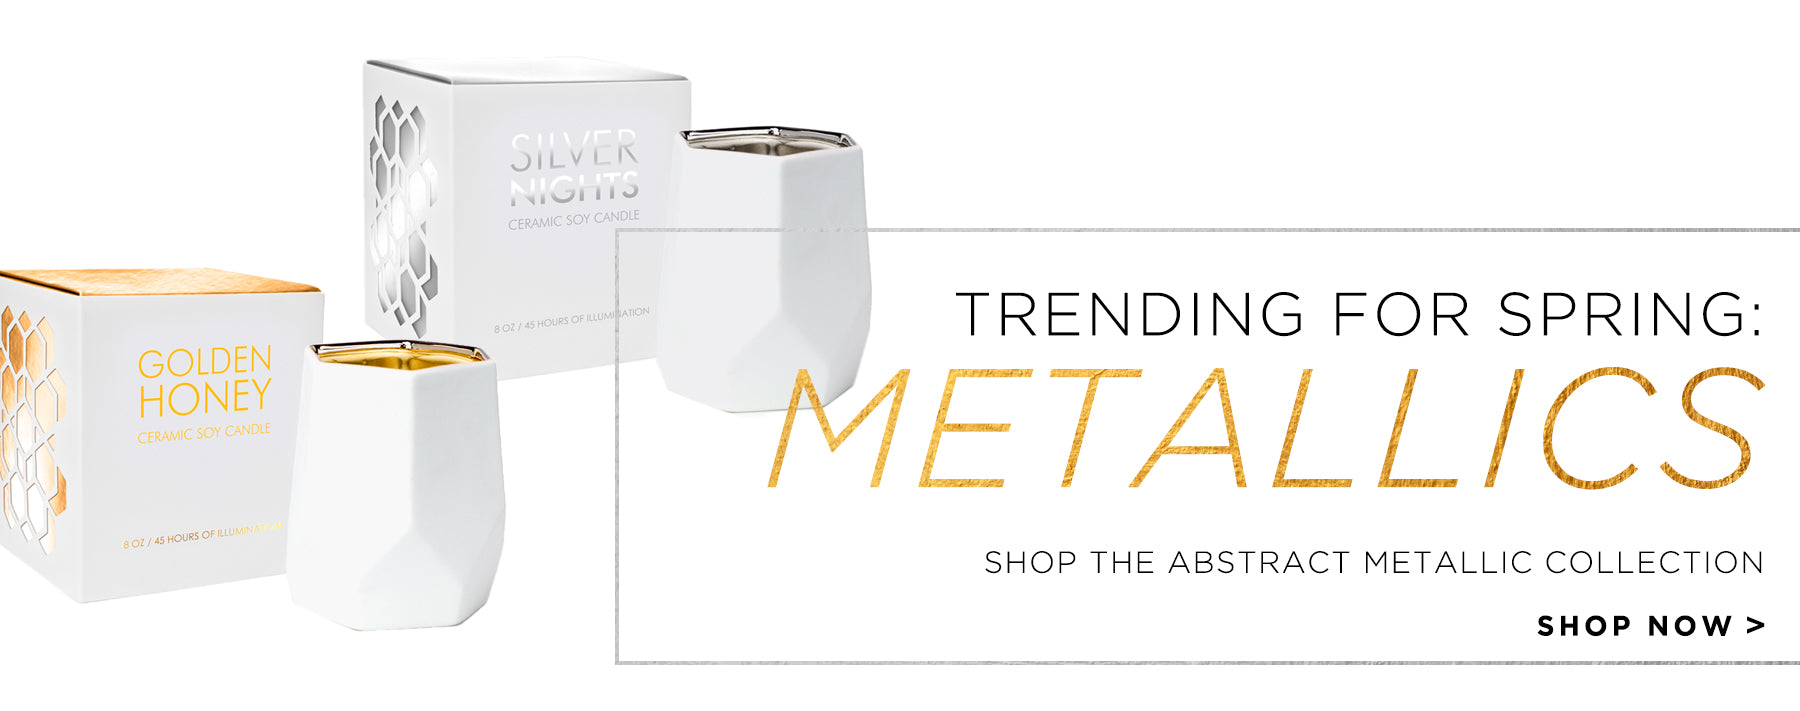 Trending for Spring: Metallics. Shop the abstract metallic collection. Shop now>